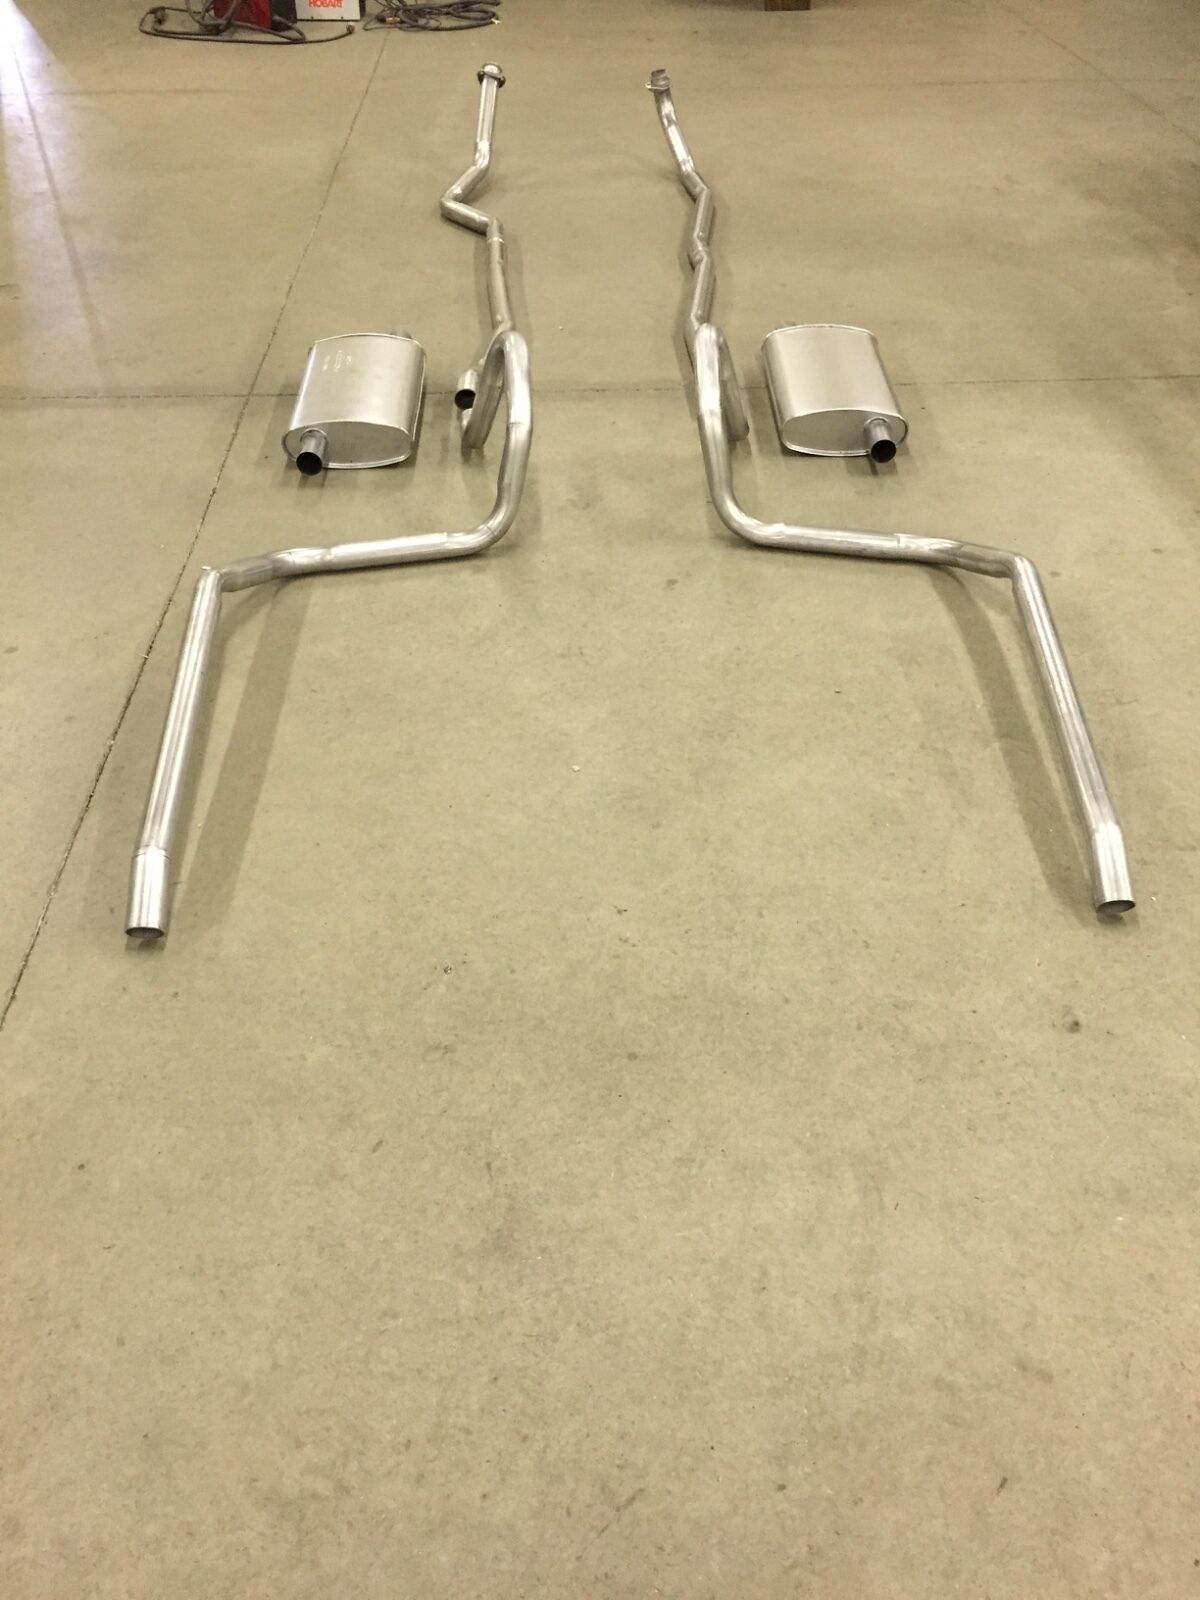 1965 1966 Chevy Belair Biscayne Impala Dual Exhaust Aluminized Chevrolet Bel Air 396 1 Of See More